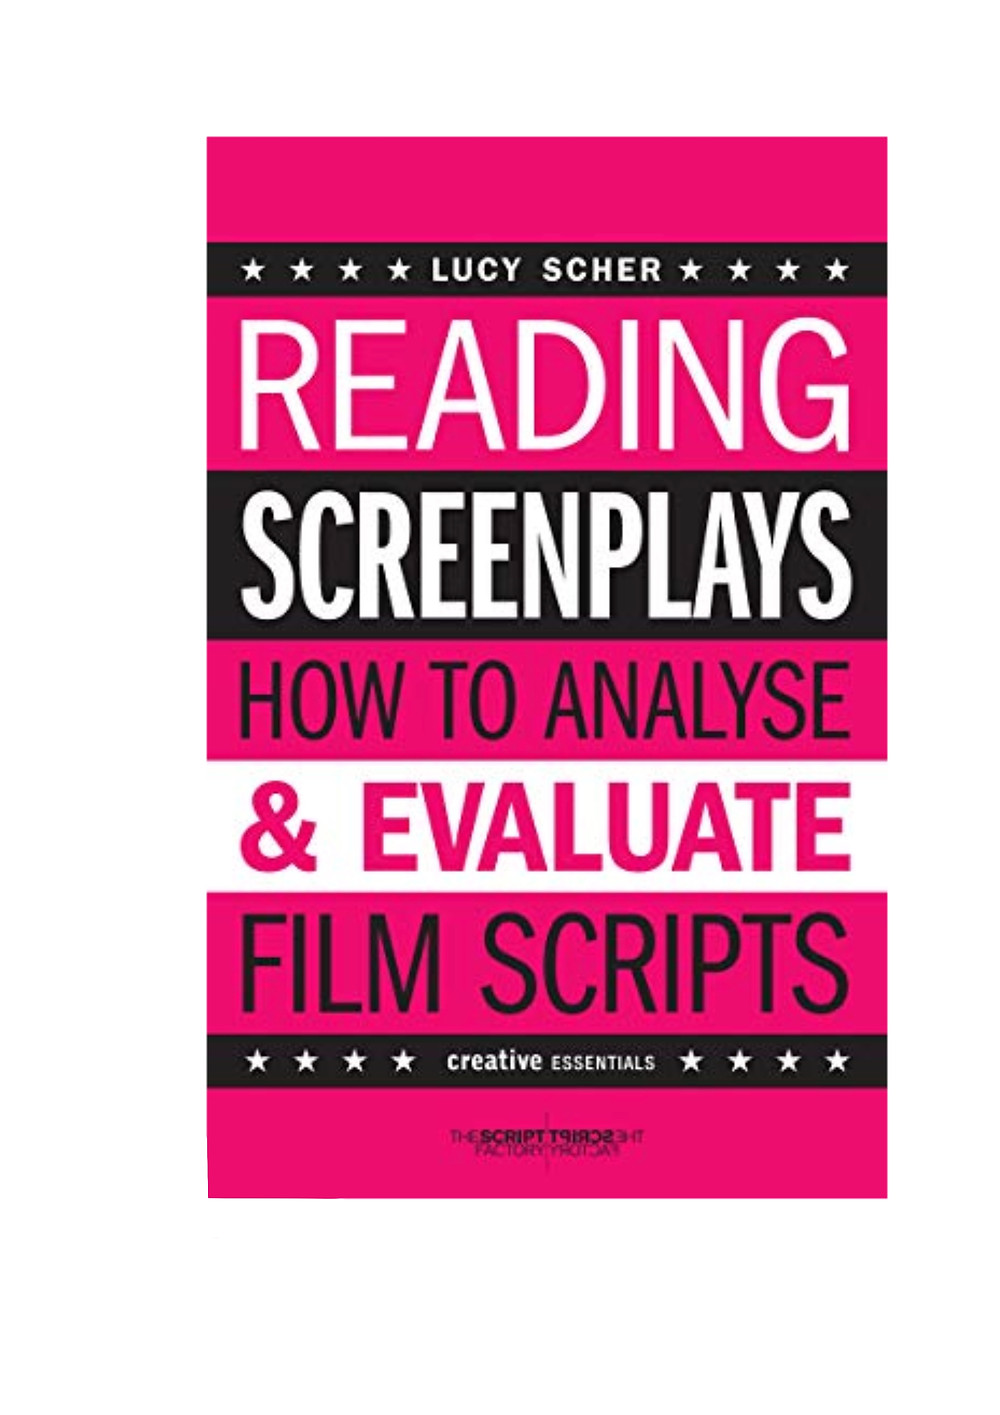 Screenwriting, How To, Script, Coverage, Readin screenplays how to analyse and evualte film scripts, Lucy Scher